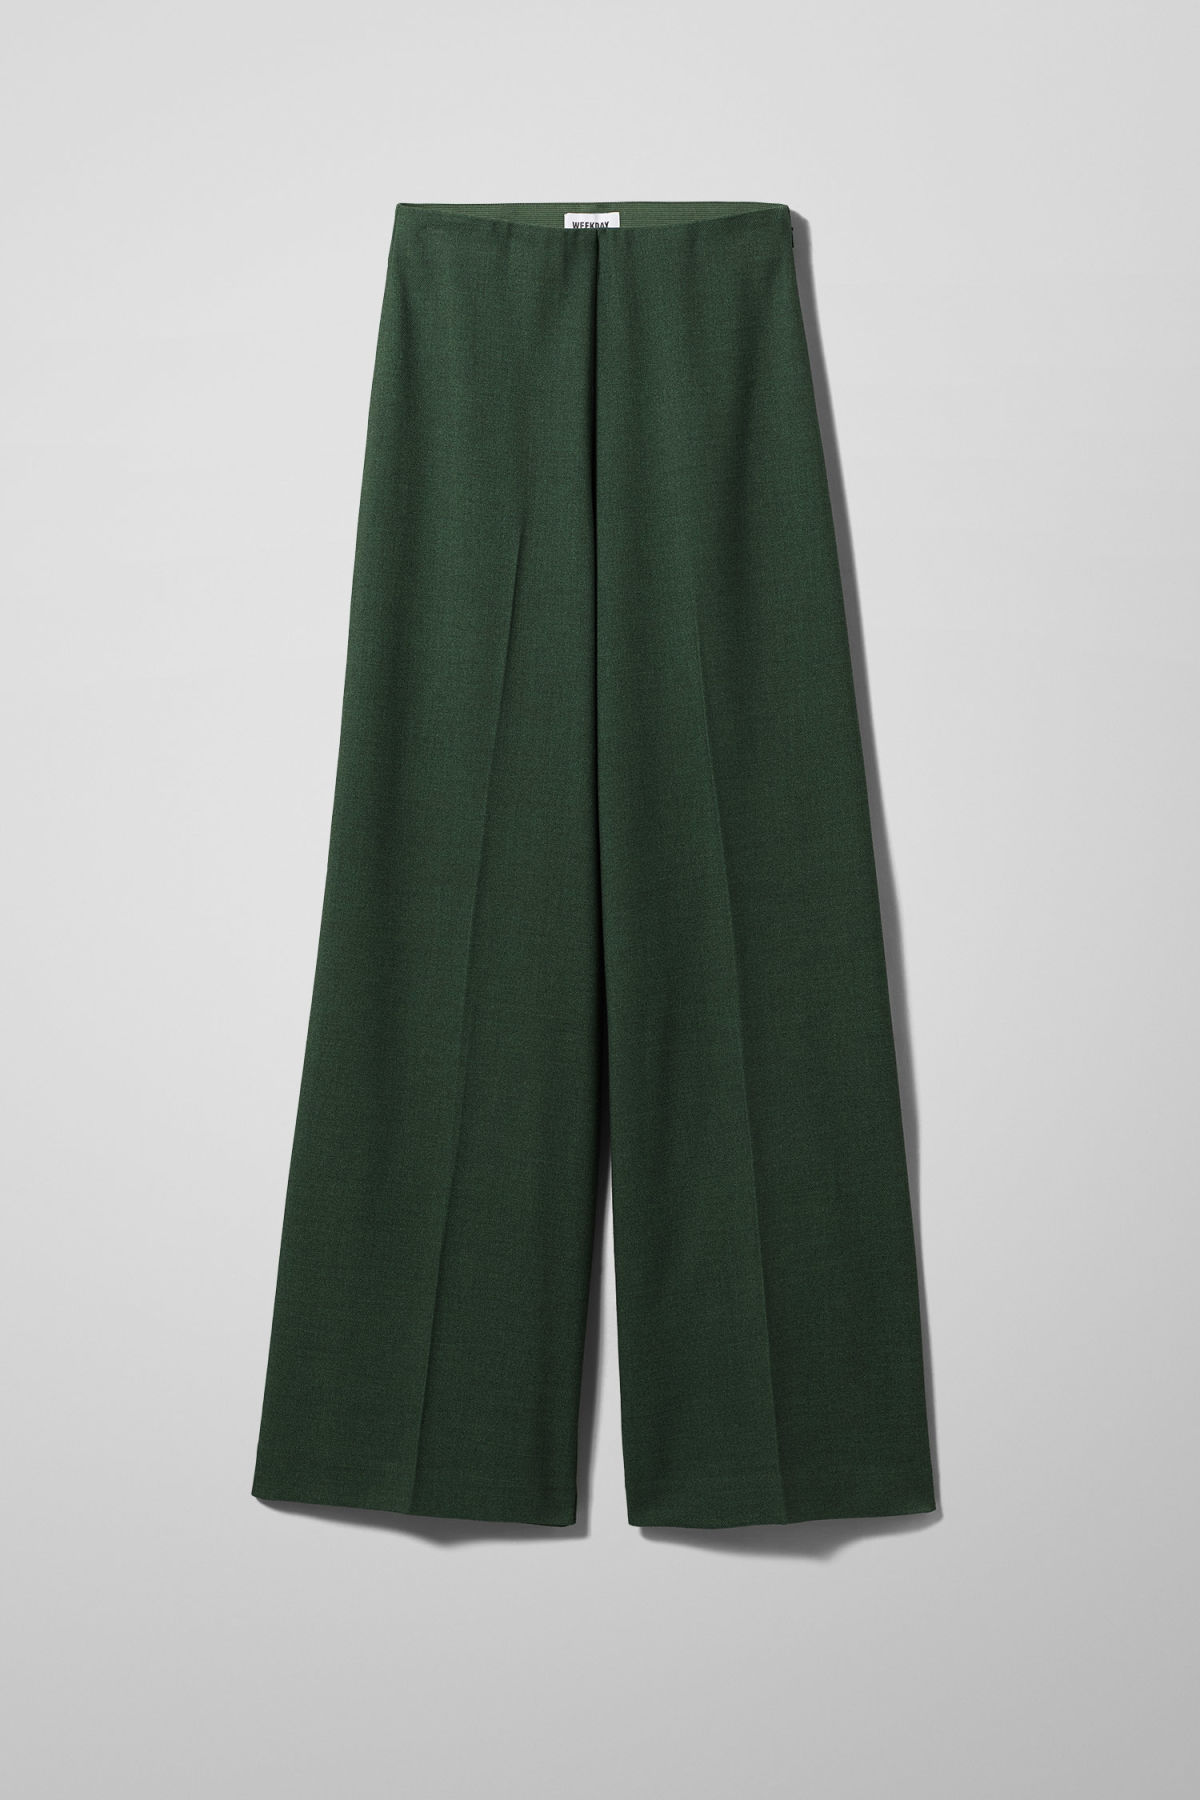 competitive price defdf 18e60 ... twill trousers in green Front image of Weekday in green ...